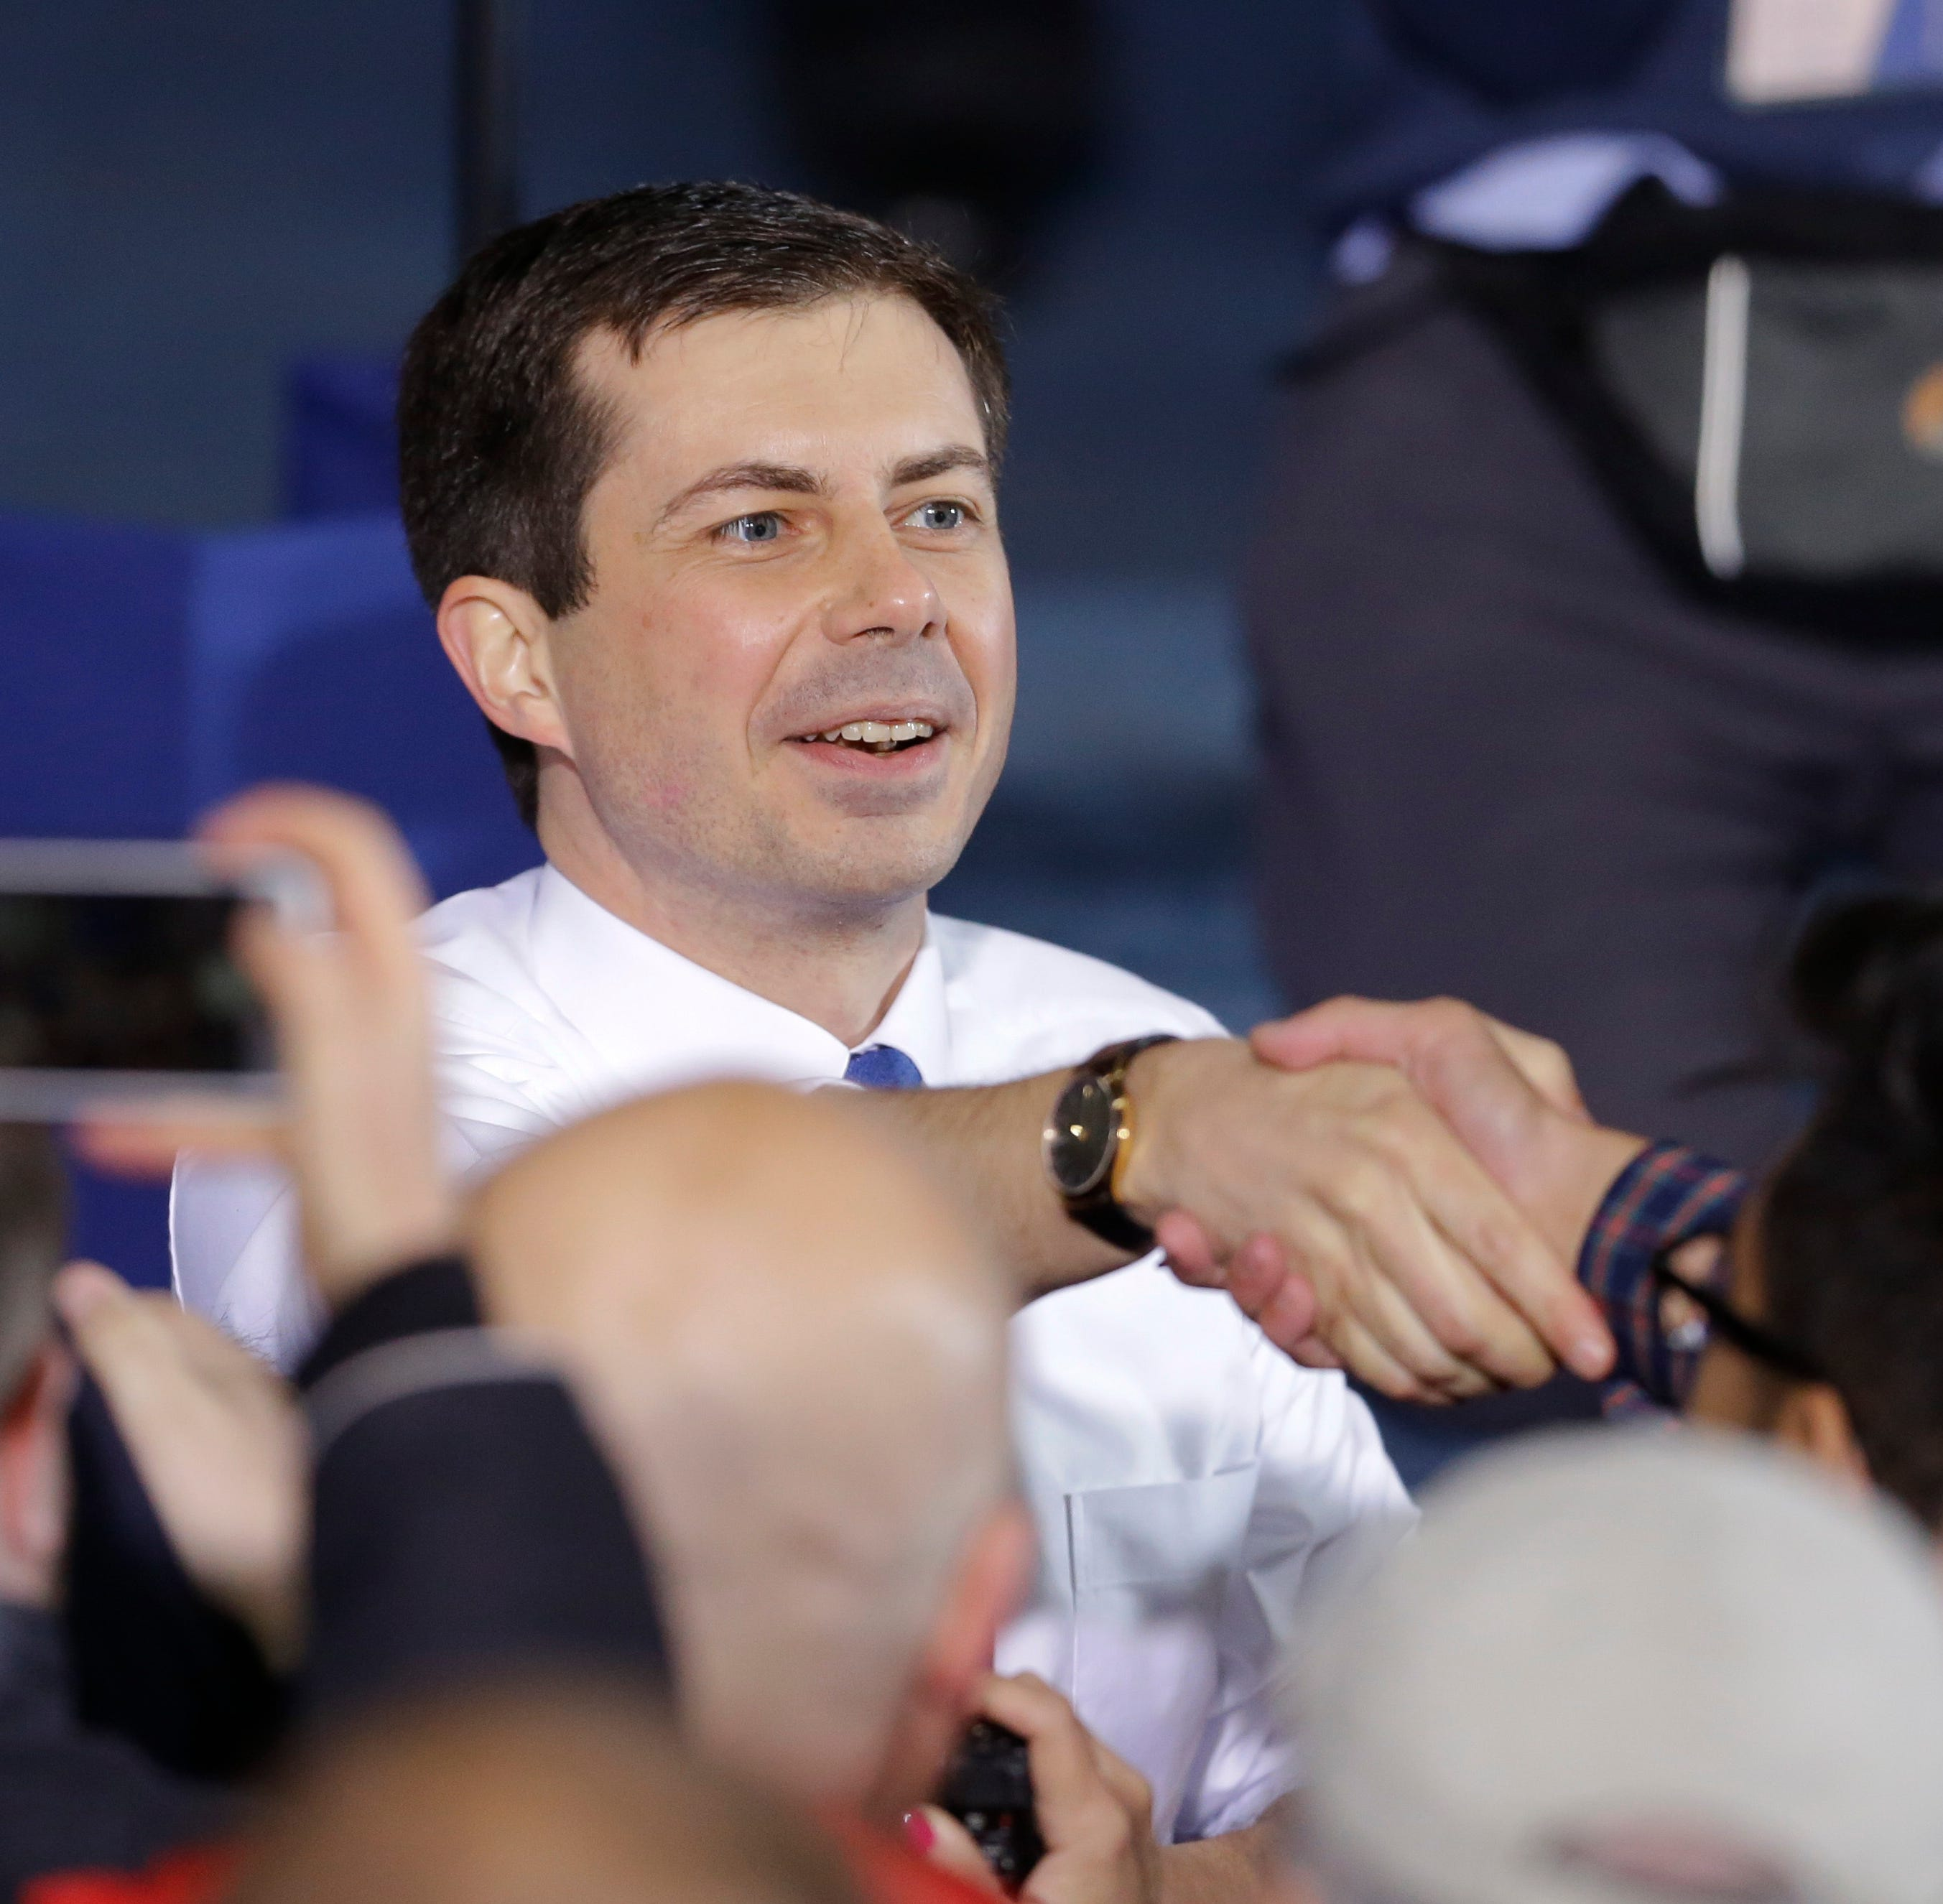 Michigan student: GOP operatives concocted Buttigieg lie